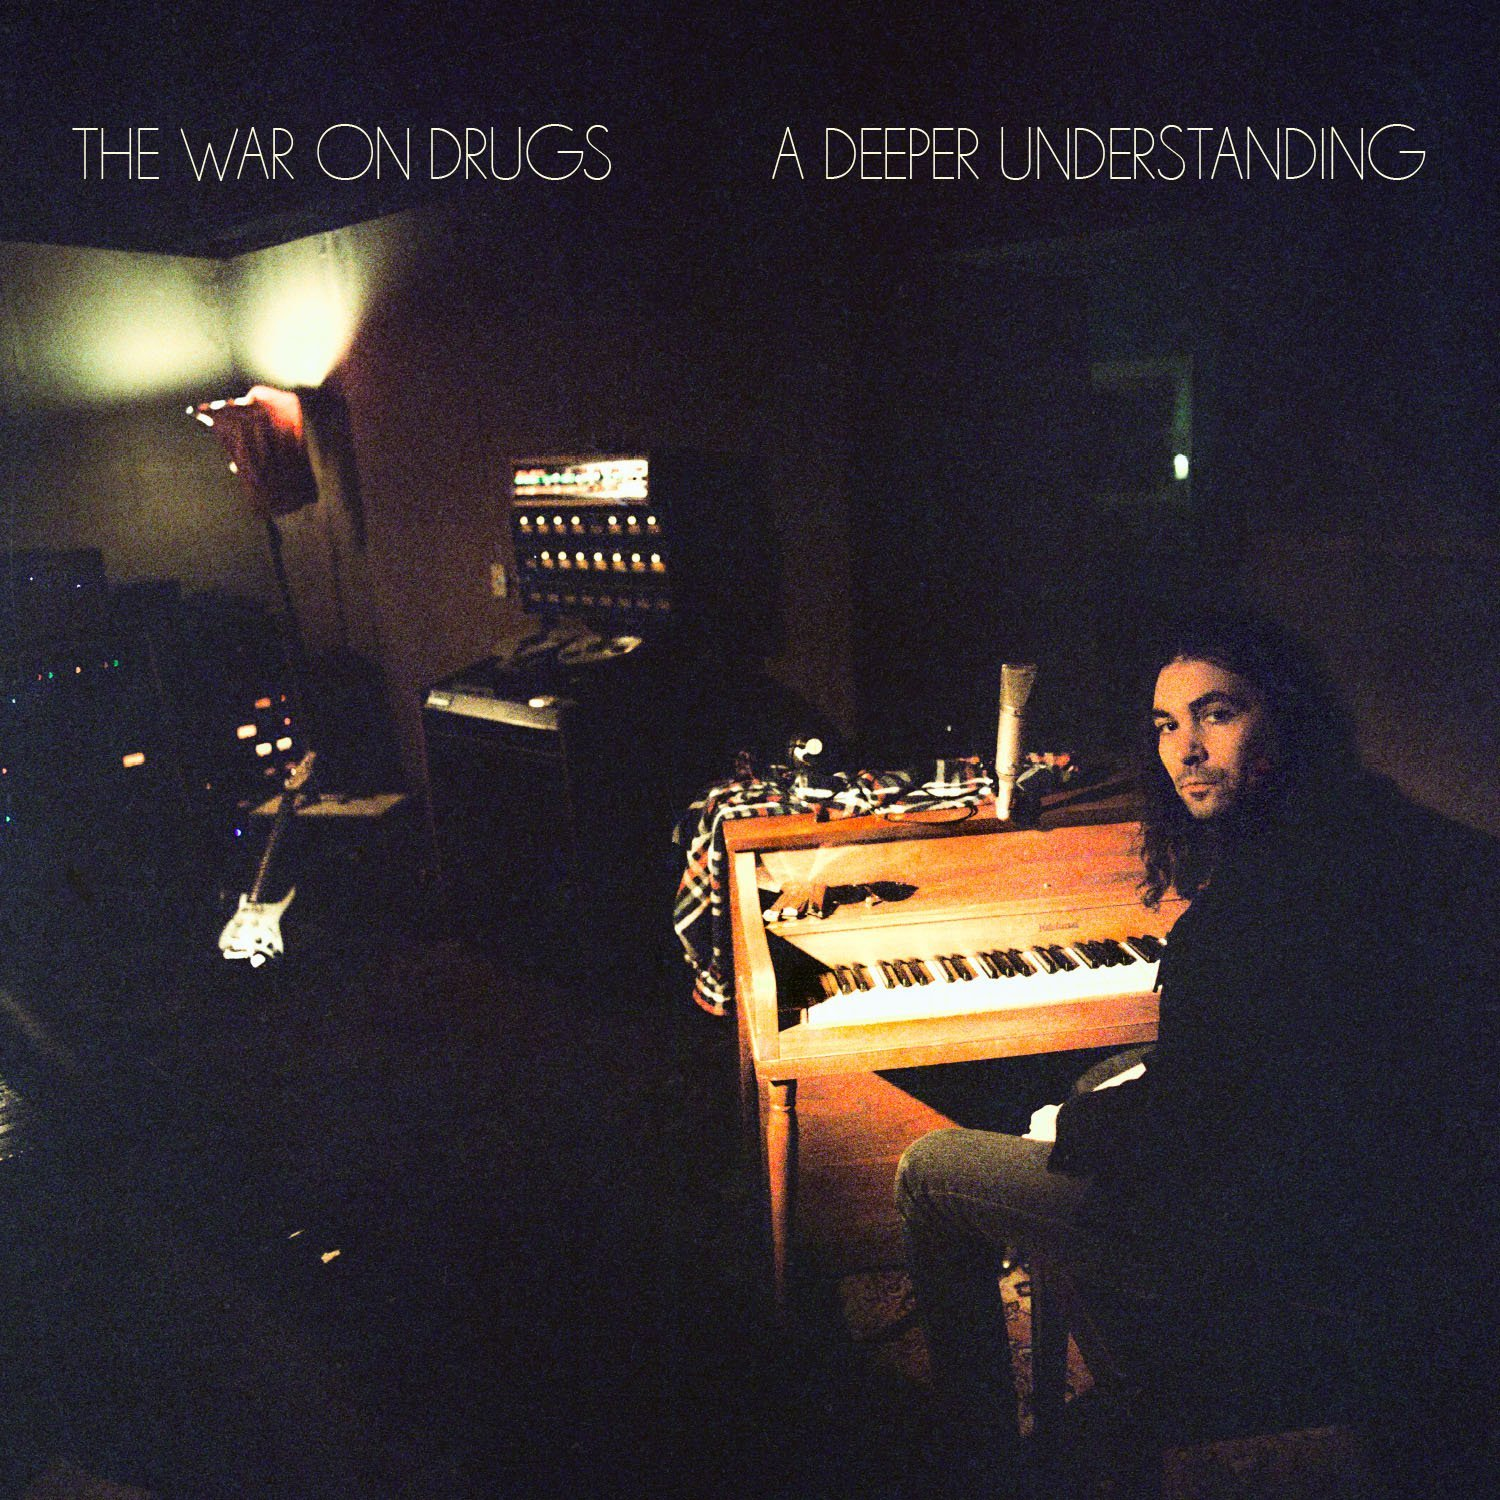 The War on Drugs, 'Pain' | Track Review